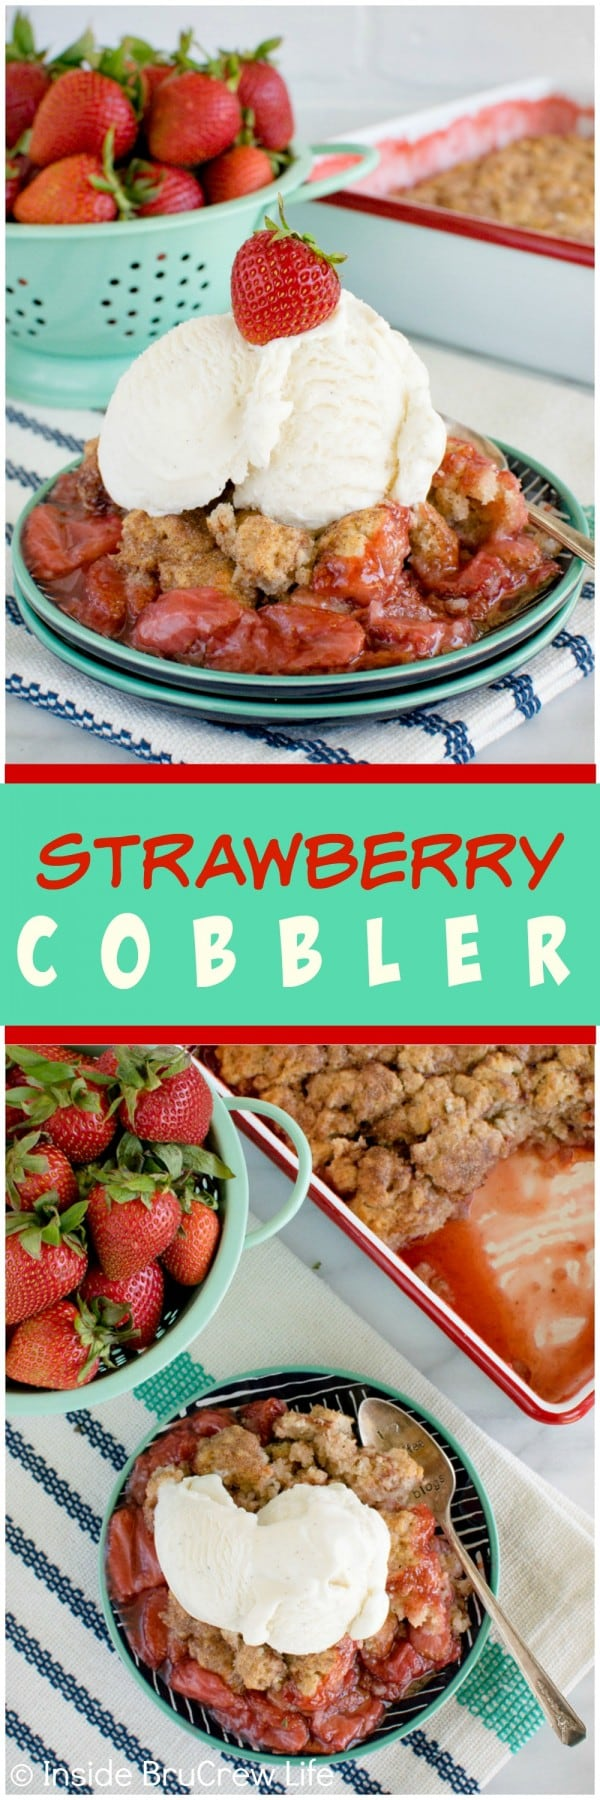 Strawberry Cobbler - hot strawberry pie filling topped with cinnamon sugar biscuits. This is an awesome dessert recipe!